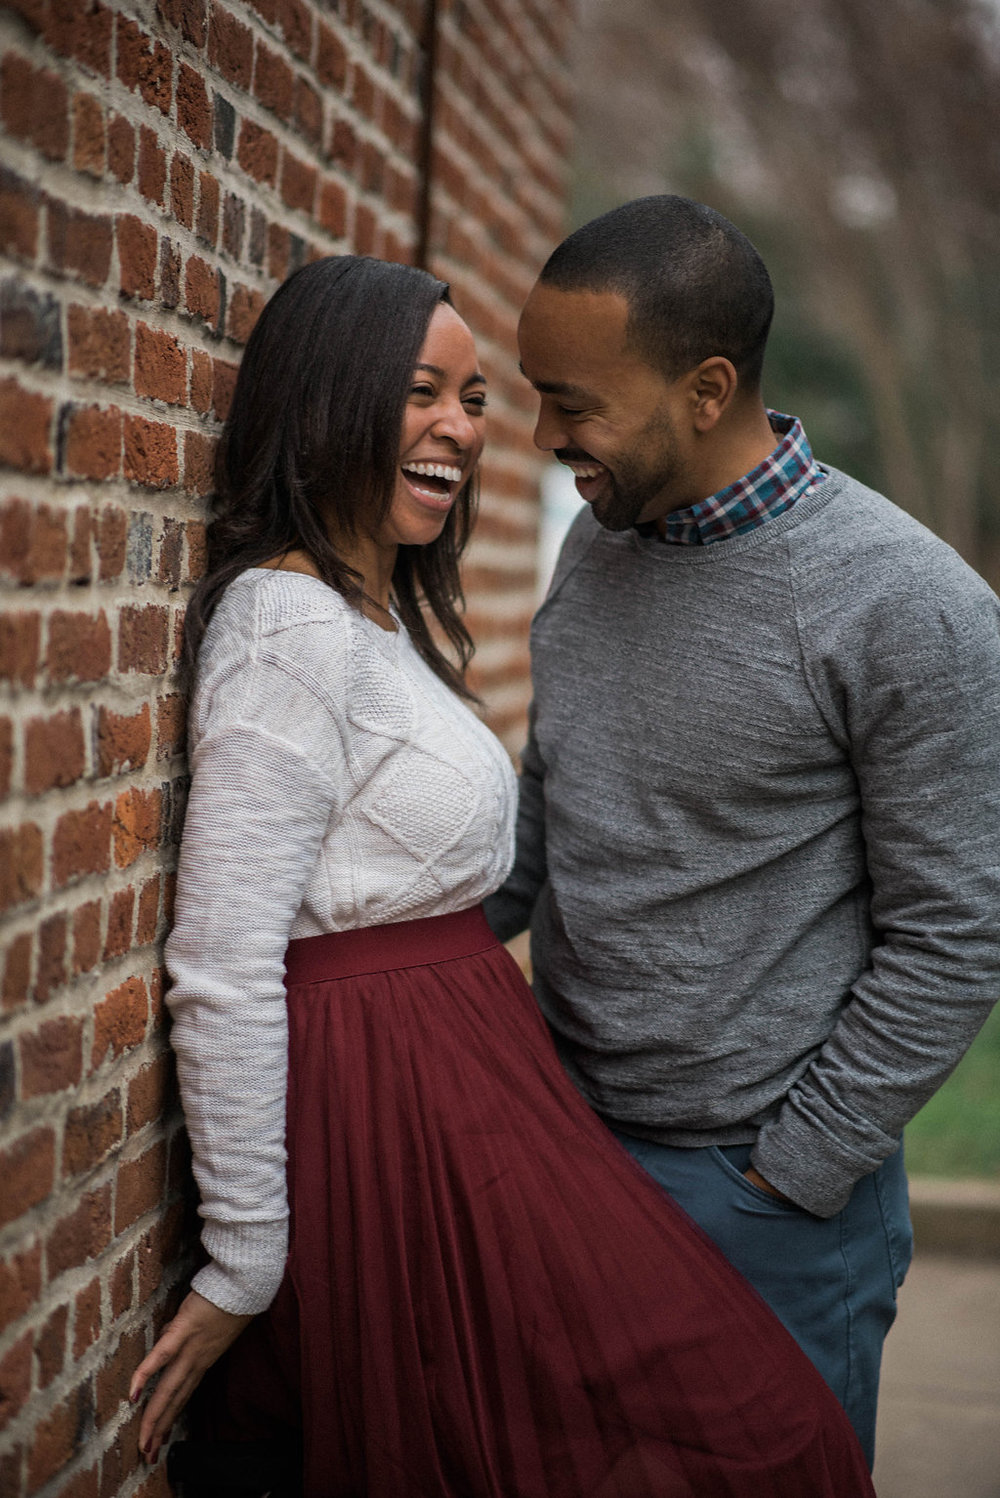 old town leesburg fun engagement photo